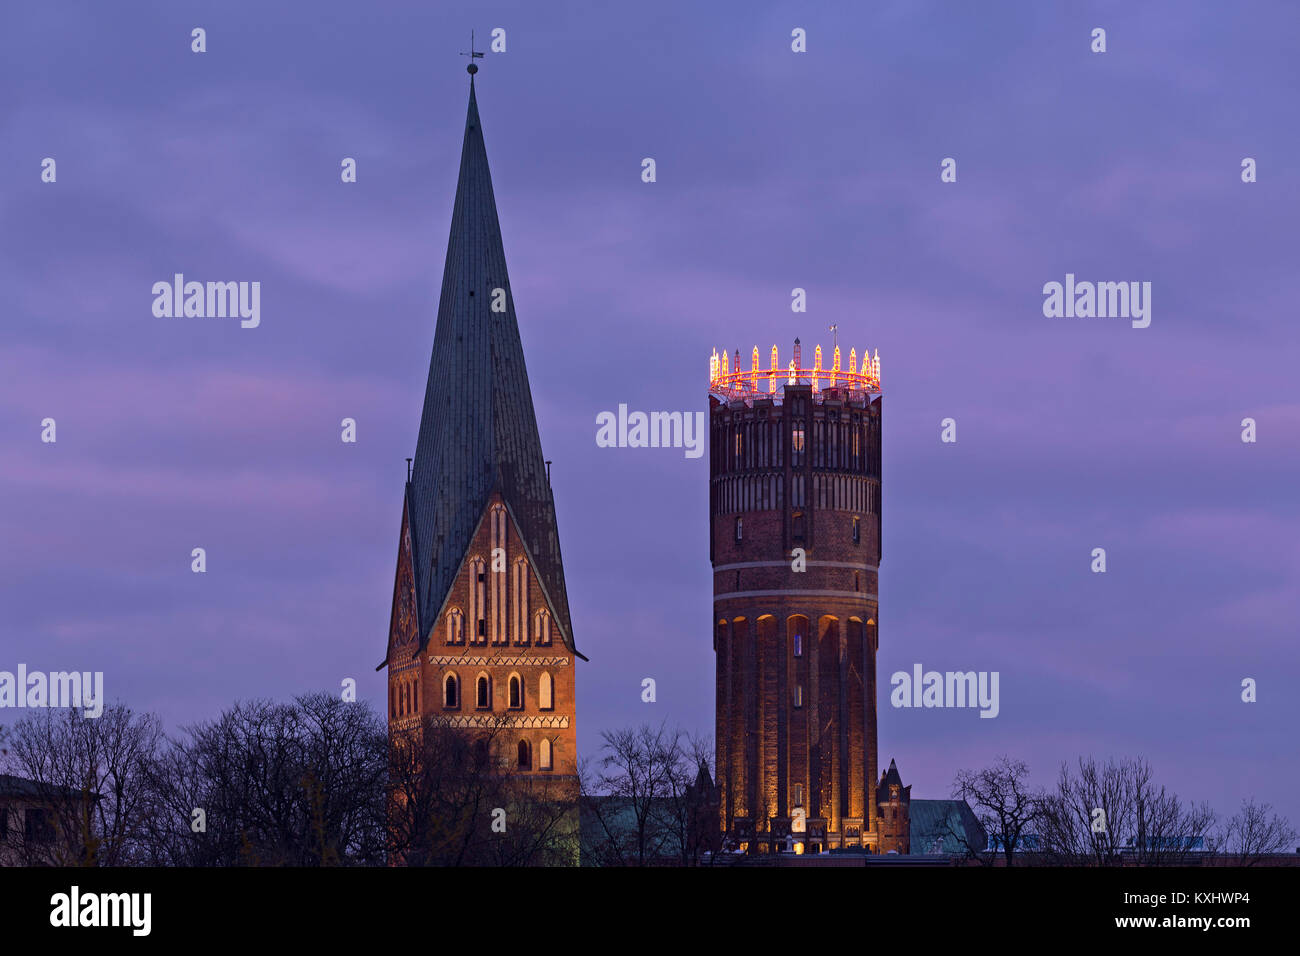 Johannis Church, old water tower with Advent wreath, Lueneburg, Germany - Stock Image